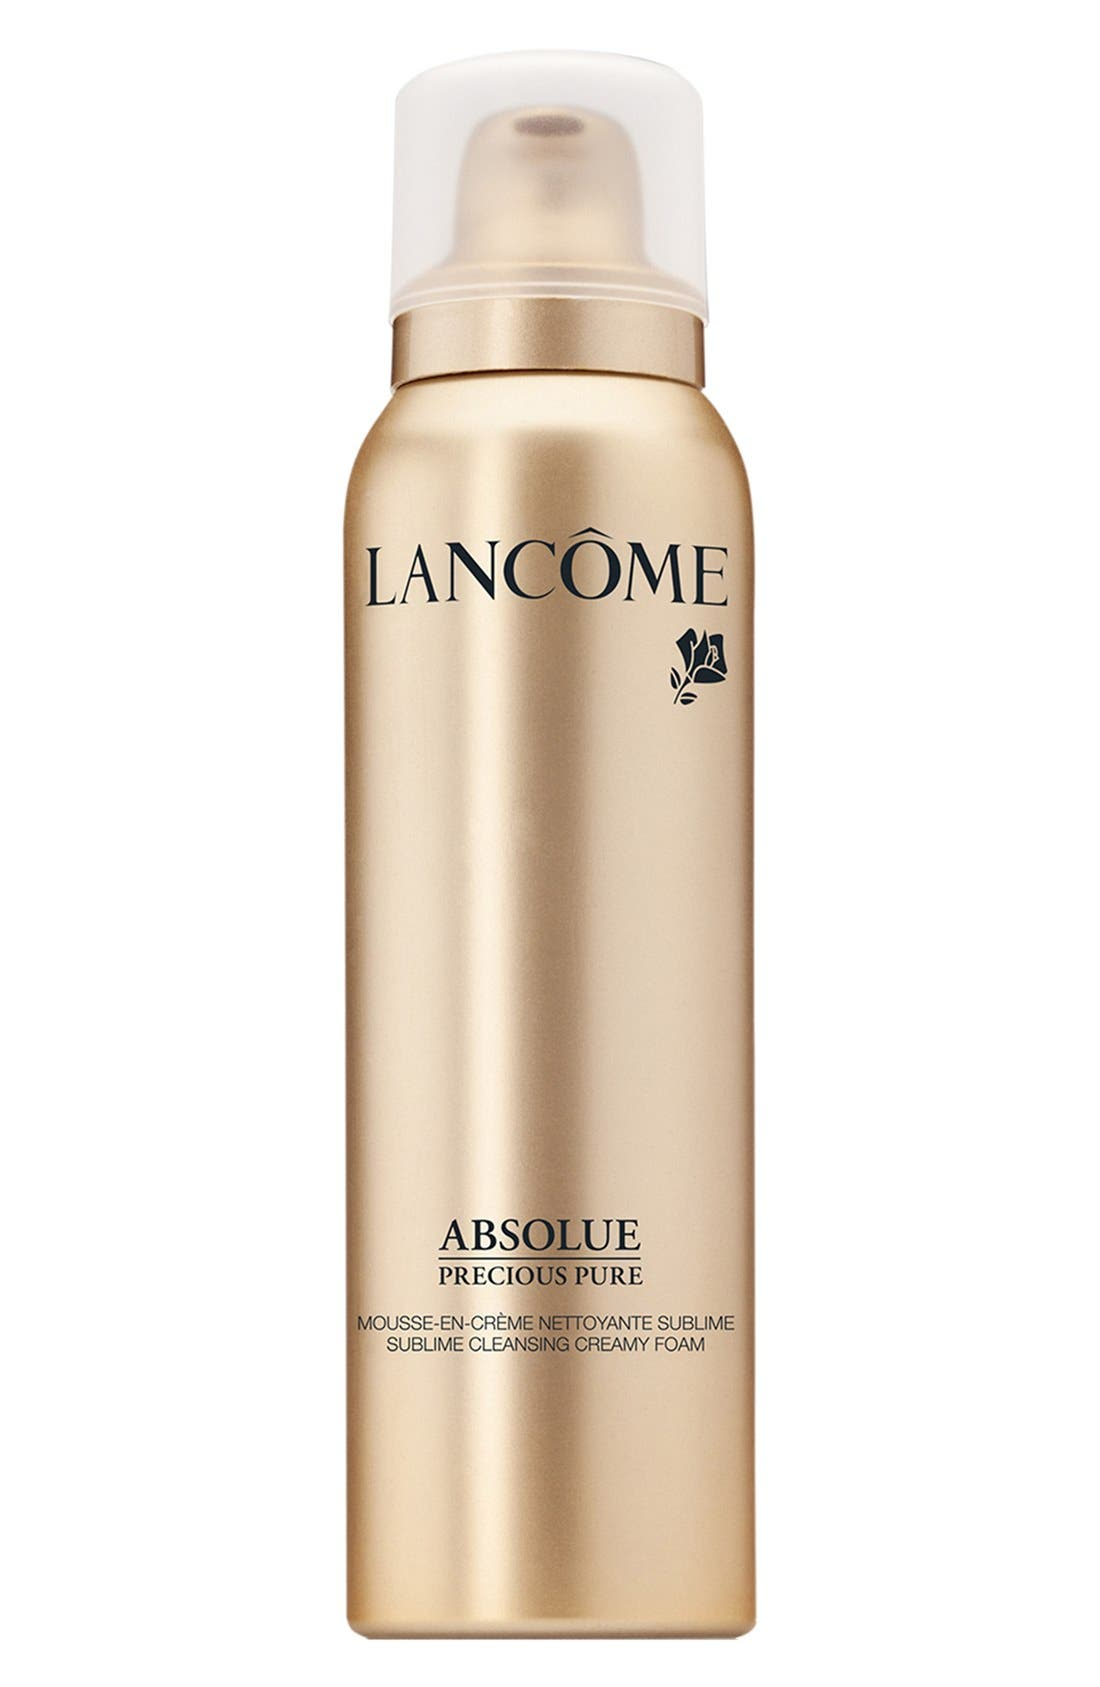 Lancôme Absolue Precious Pure Sublime Cleansing Creamy Foam